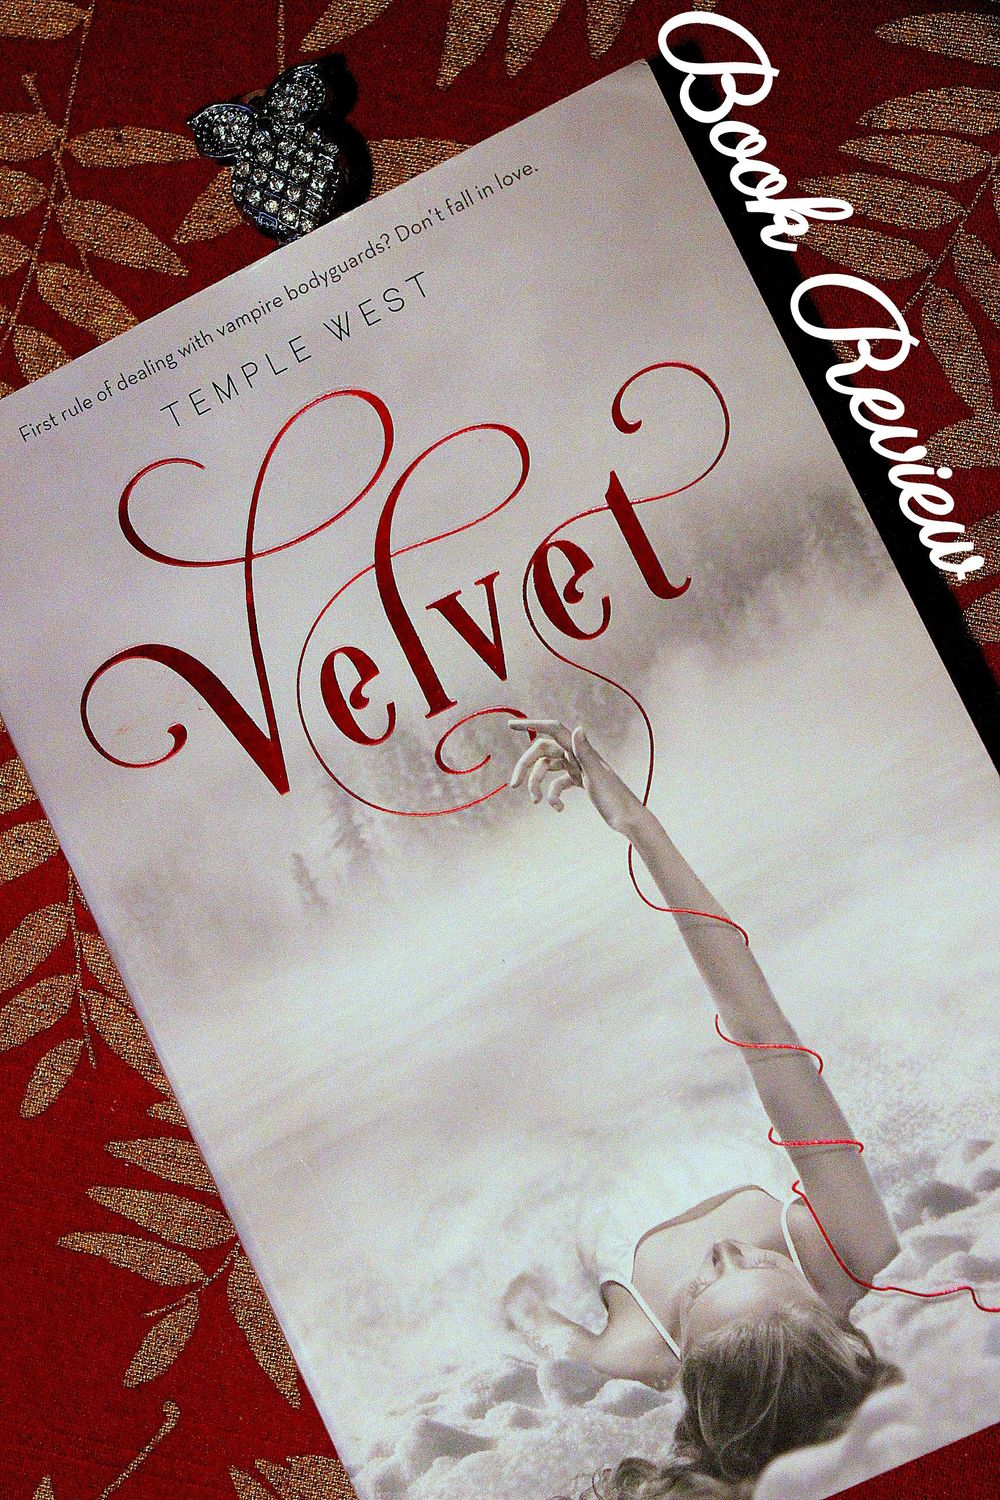 Review of Temple West's Velvet--another Soon Read's novel. Have you read it?